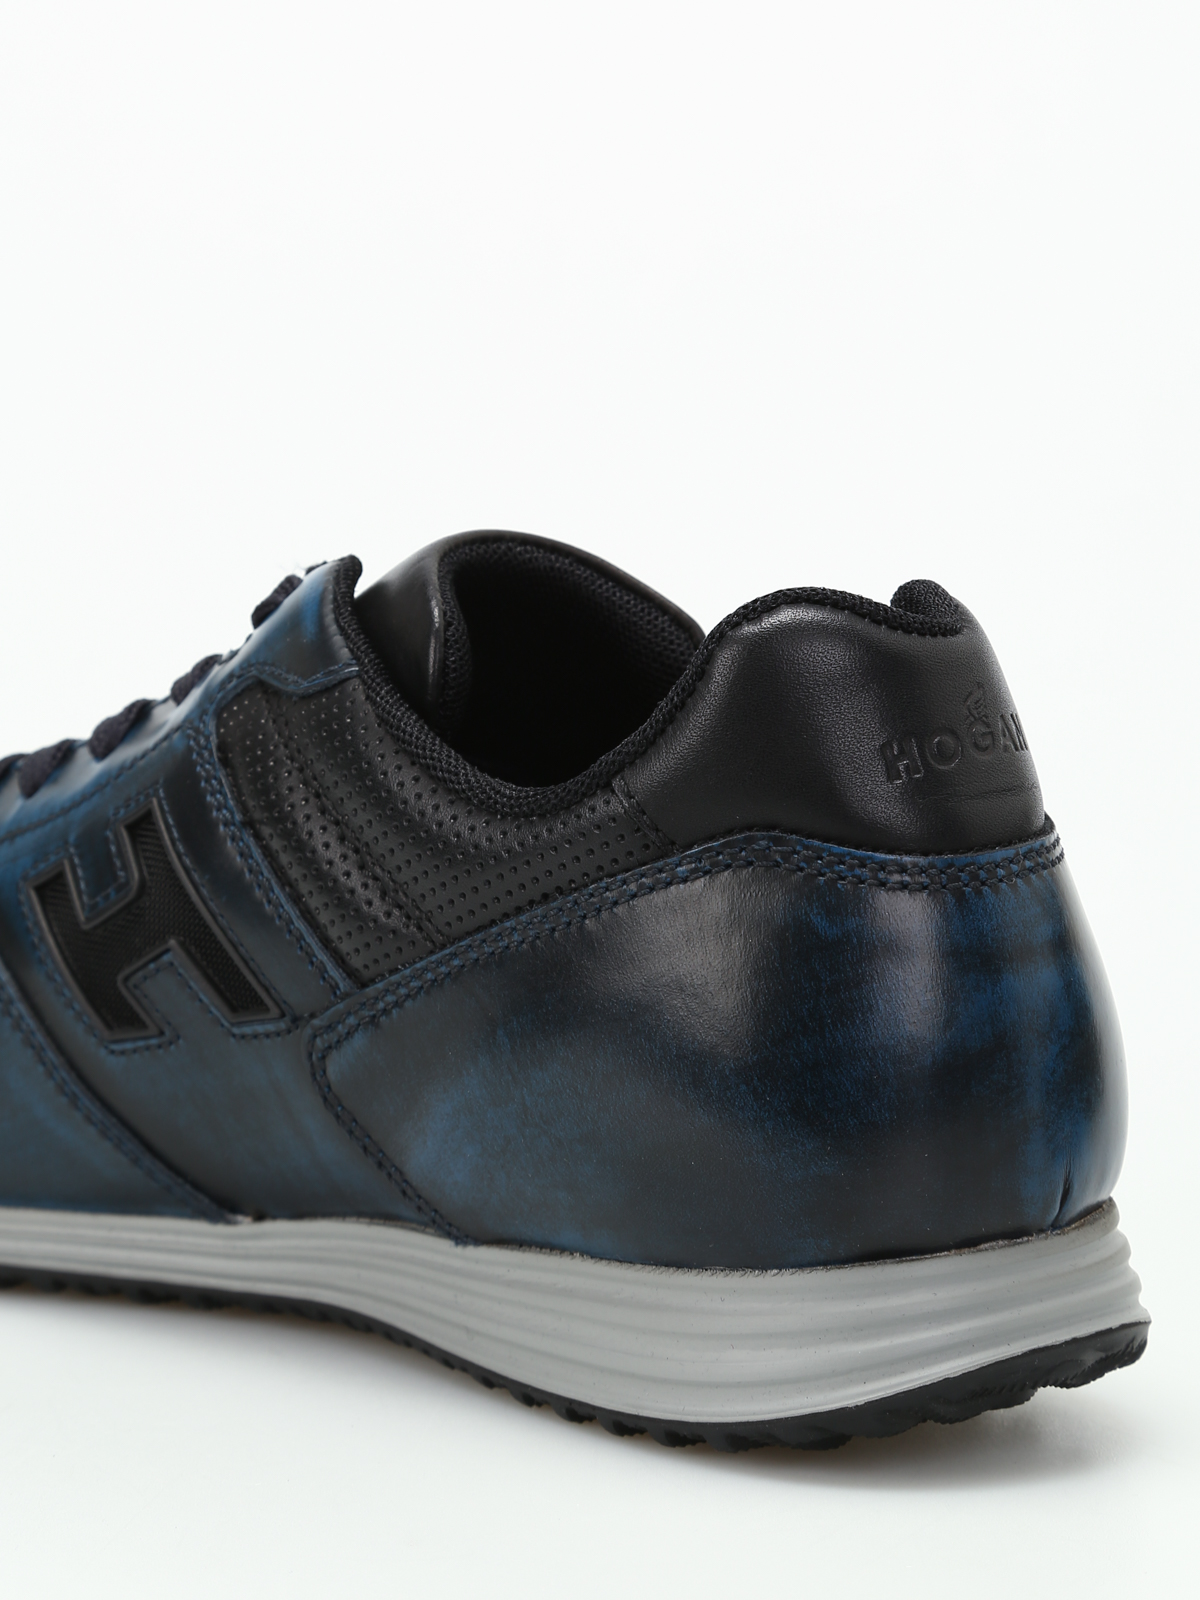 Hogan - H205 Olympia blue leather sneakers - trainers ...